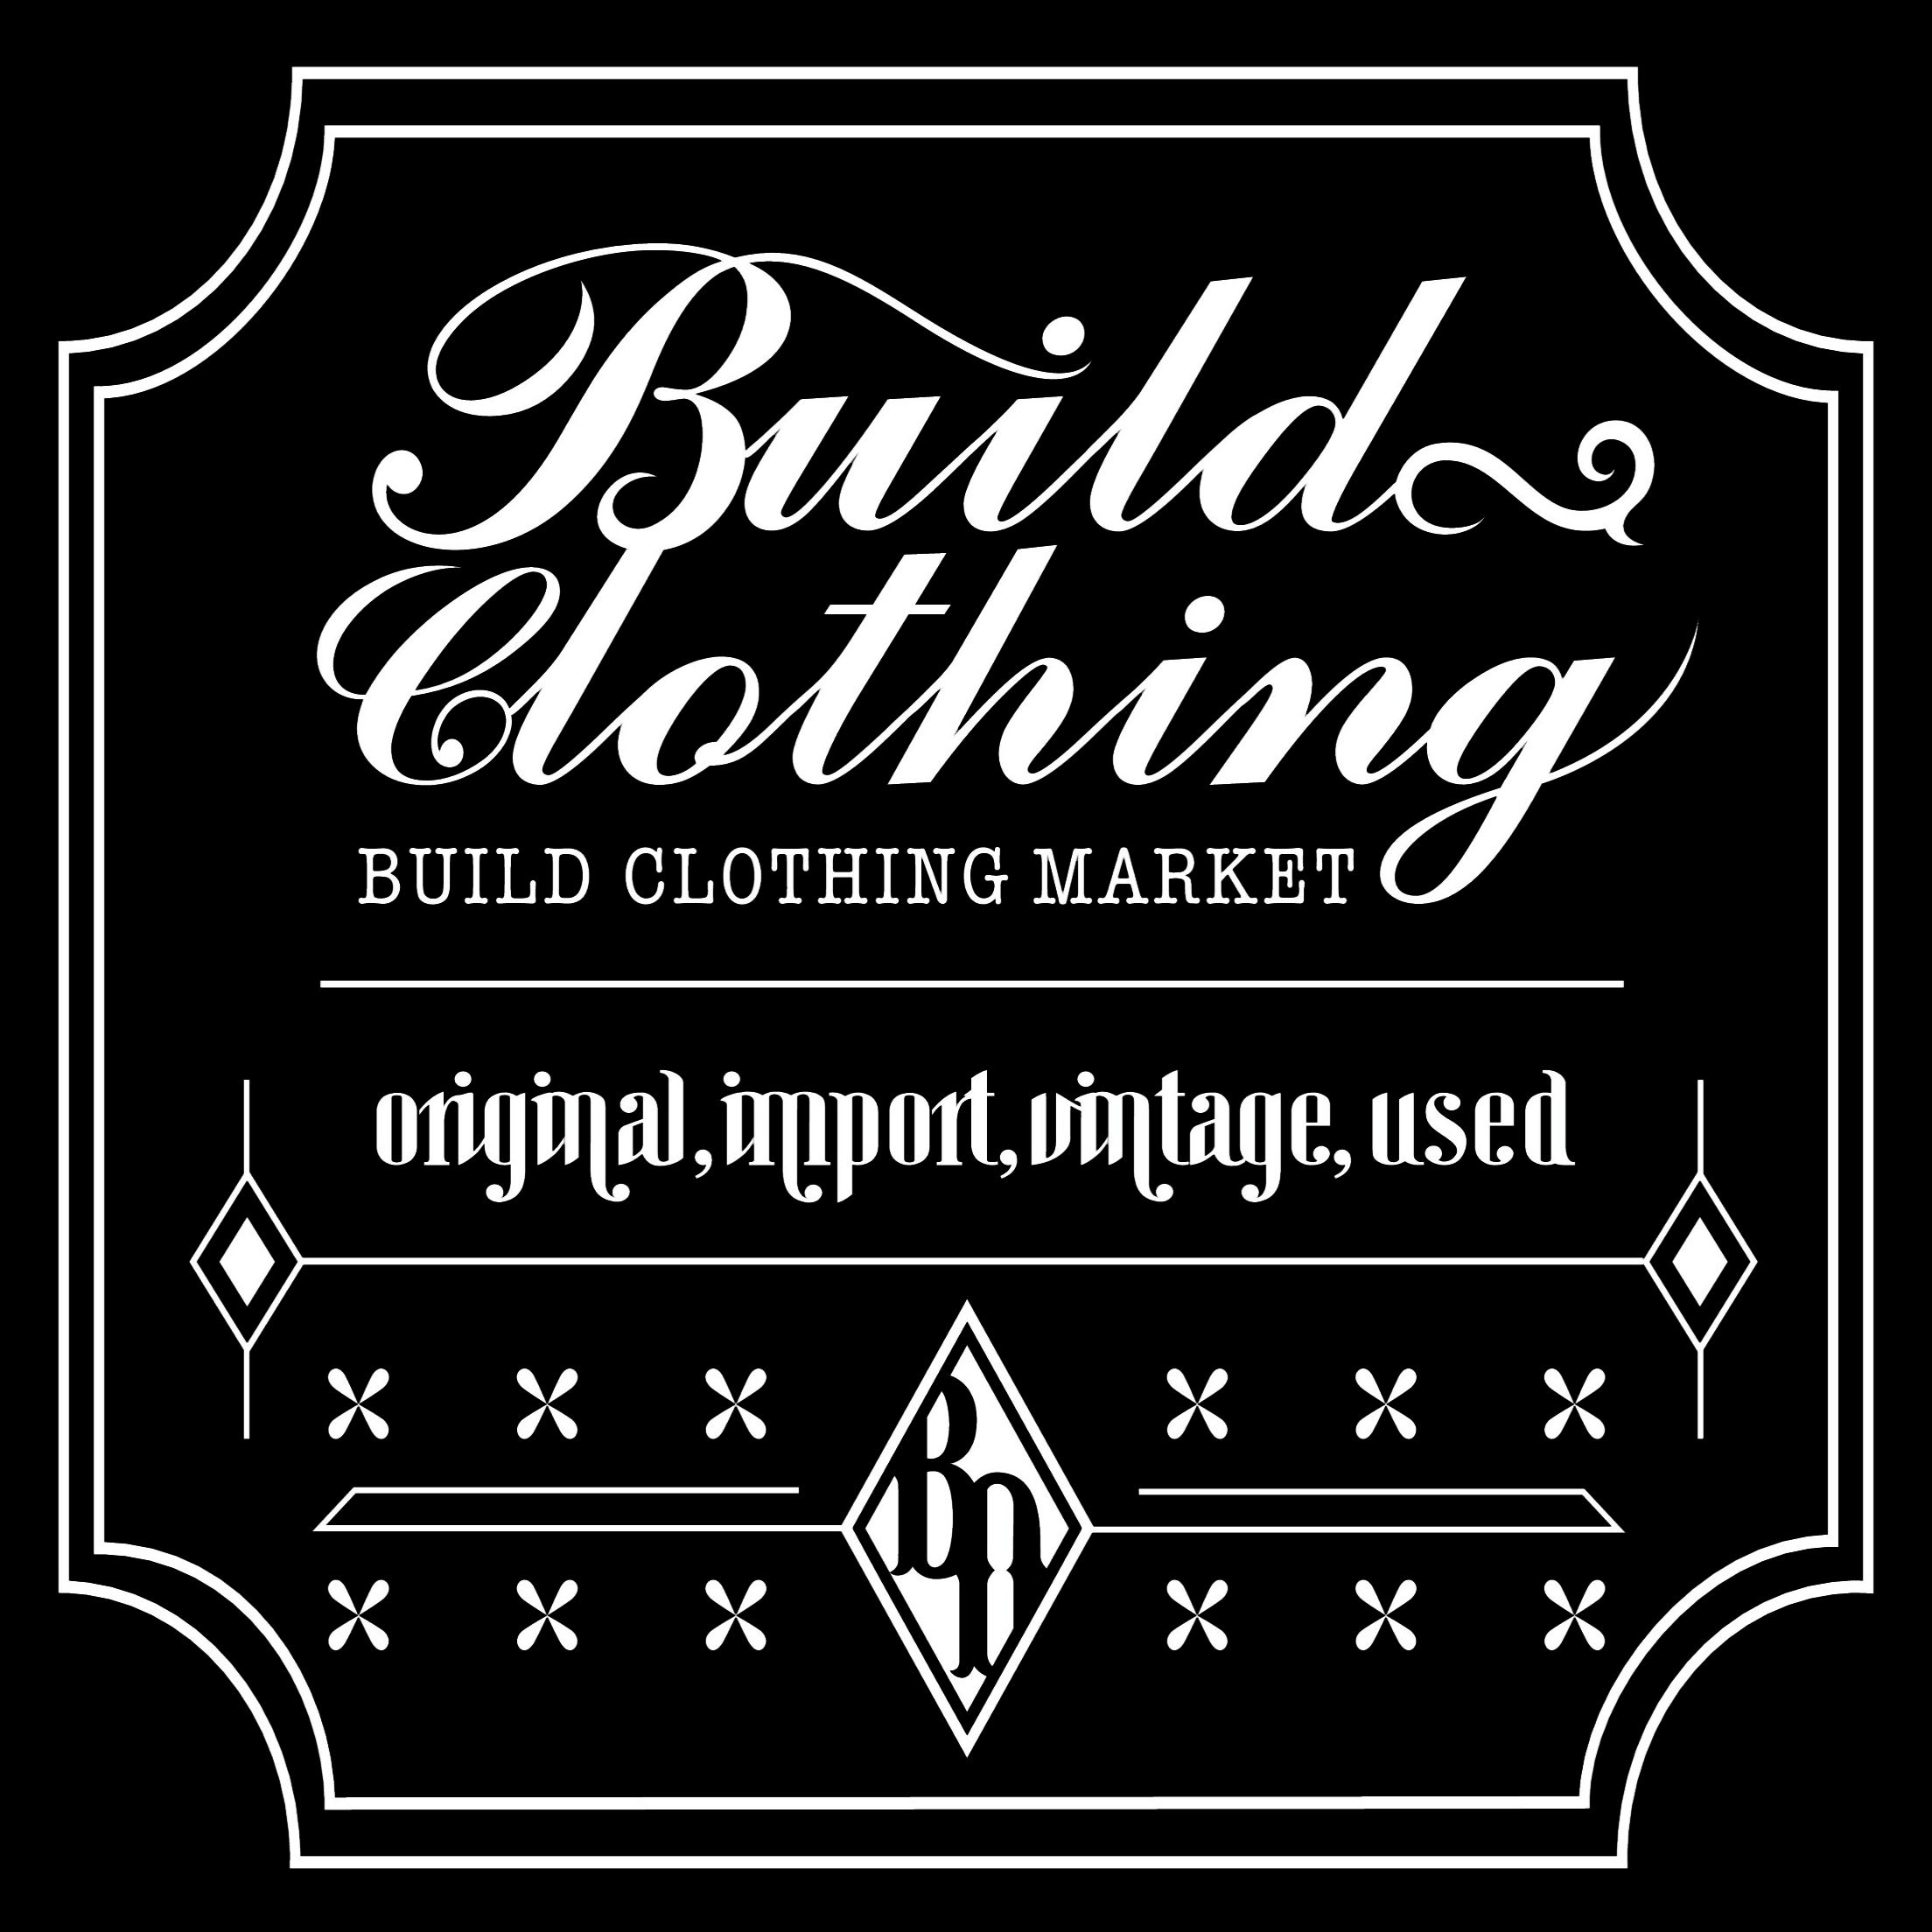 Build Clothing